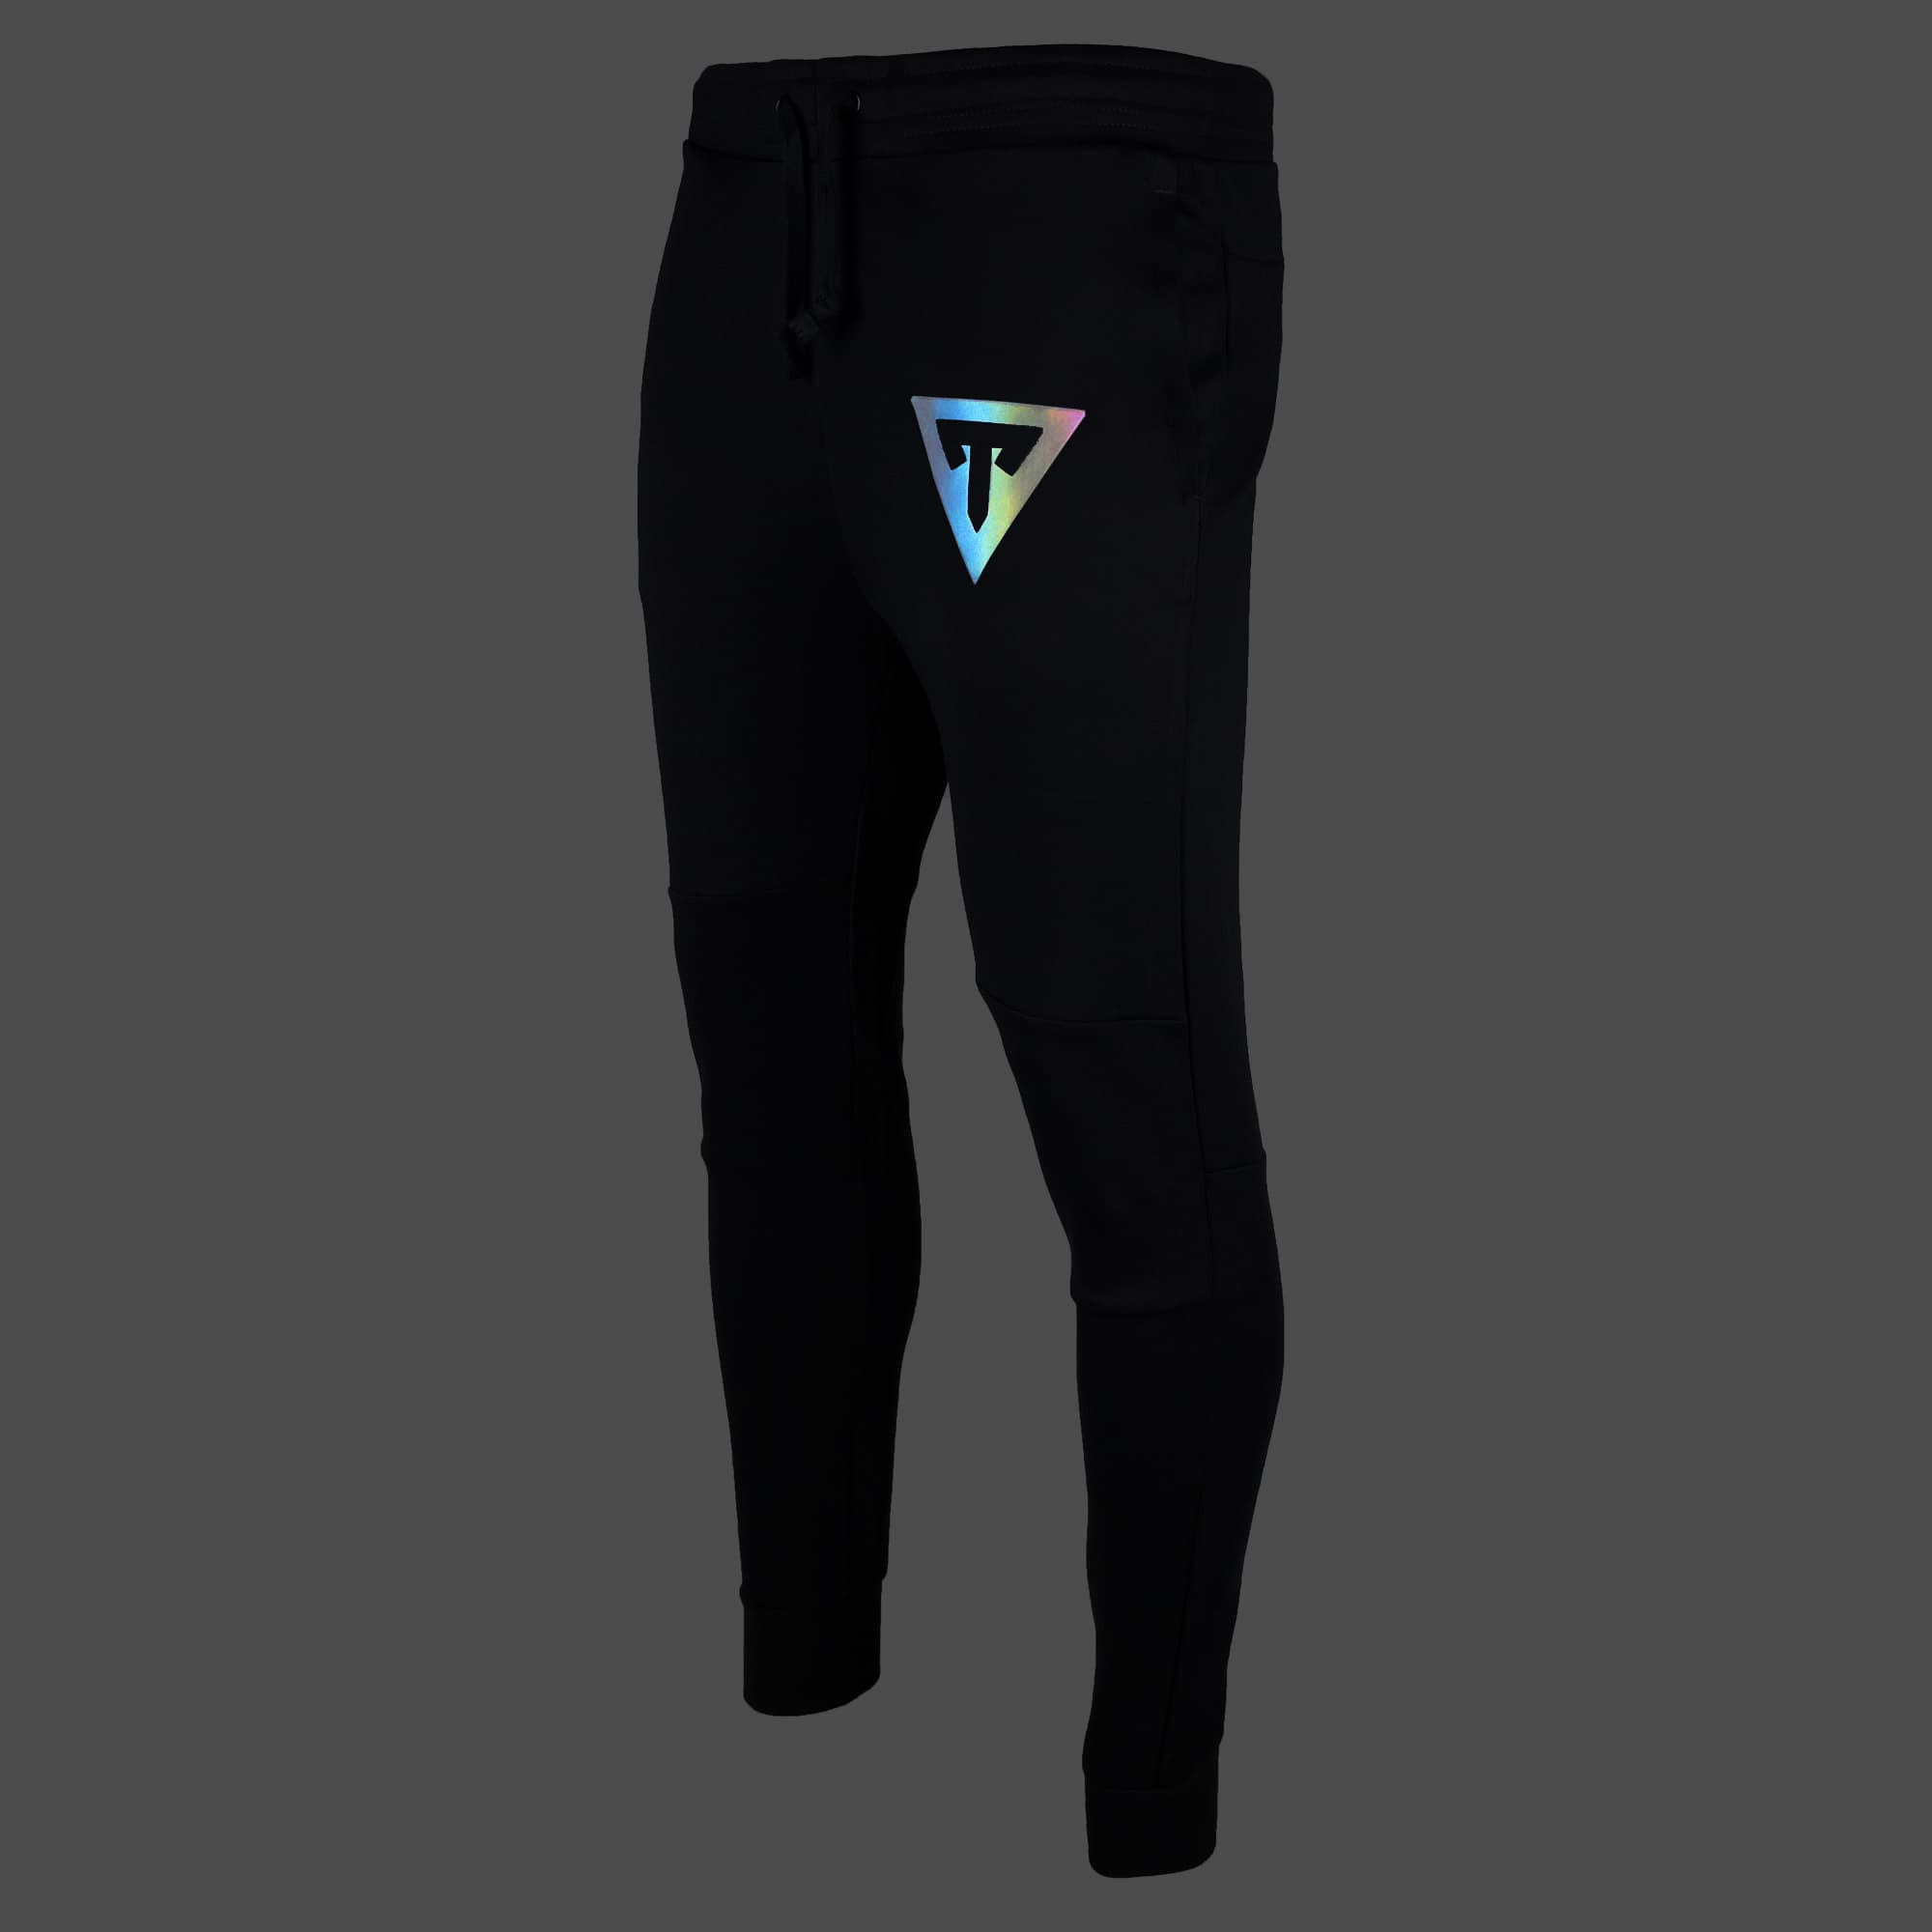 Typical Spectrum Reflective Joggers